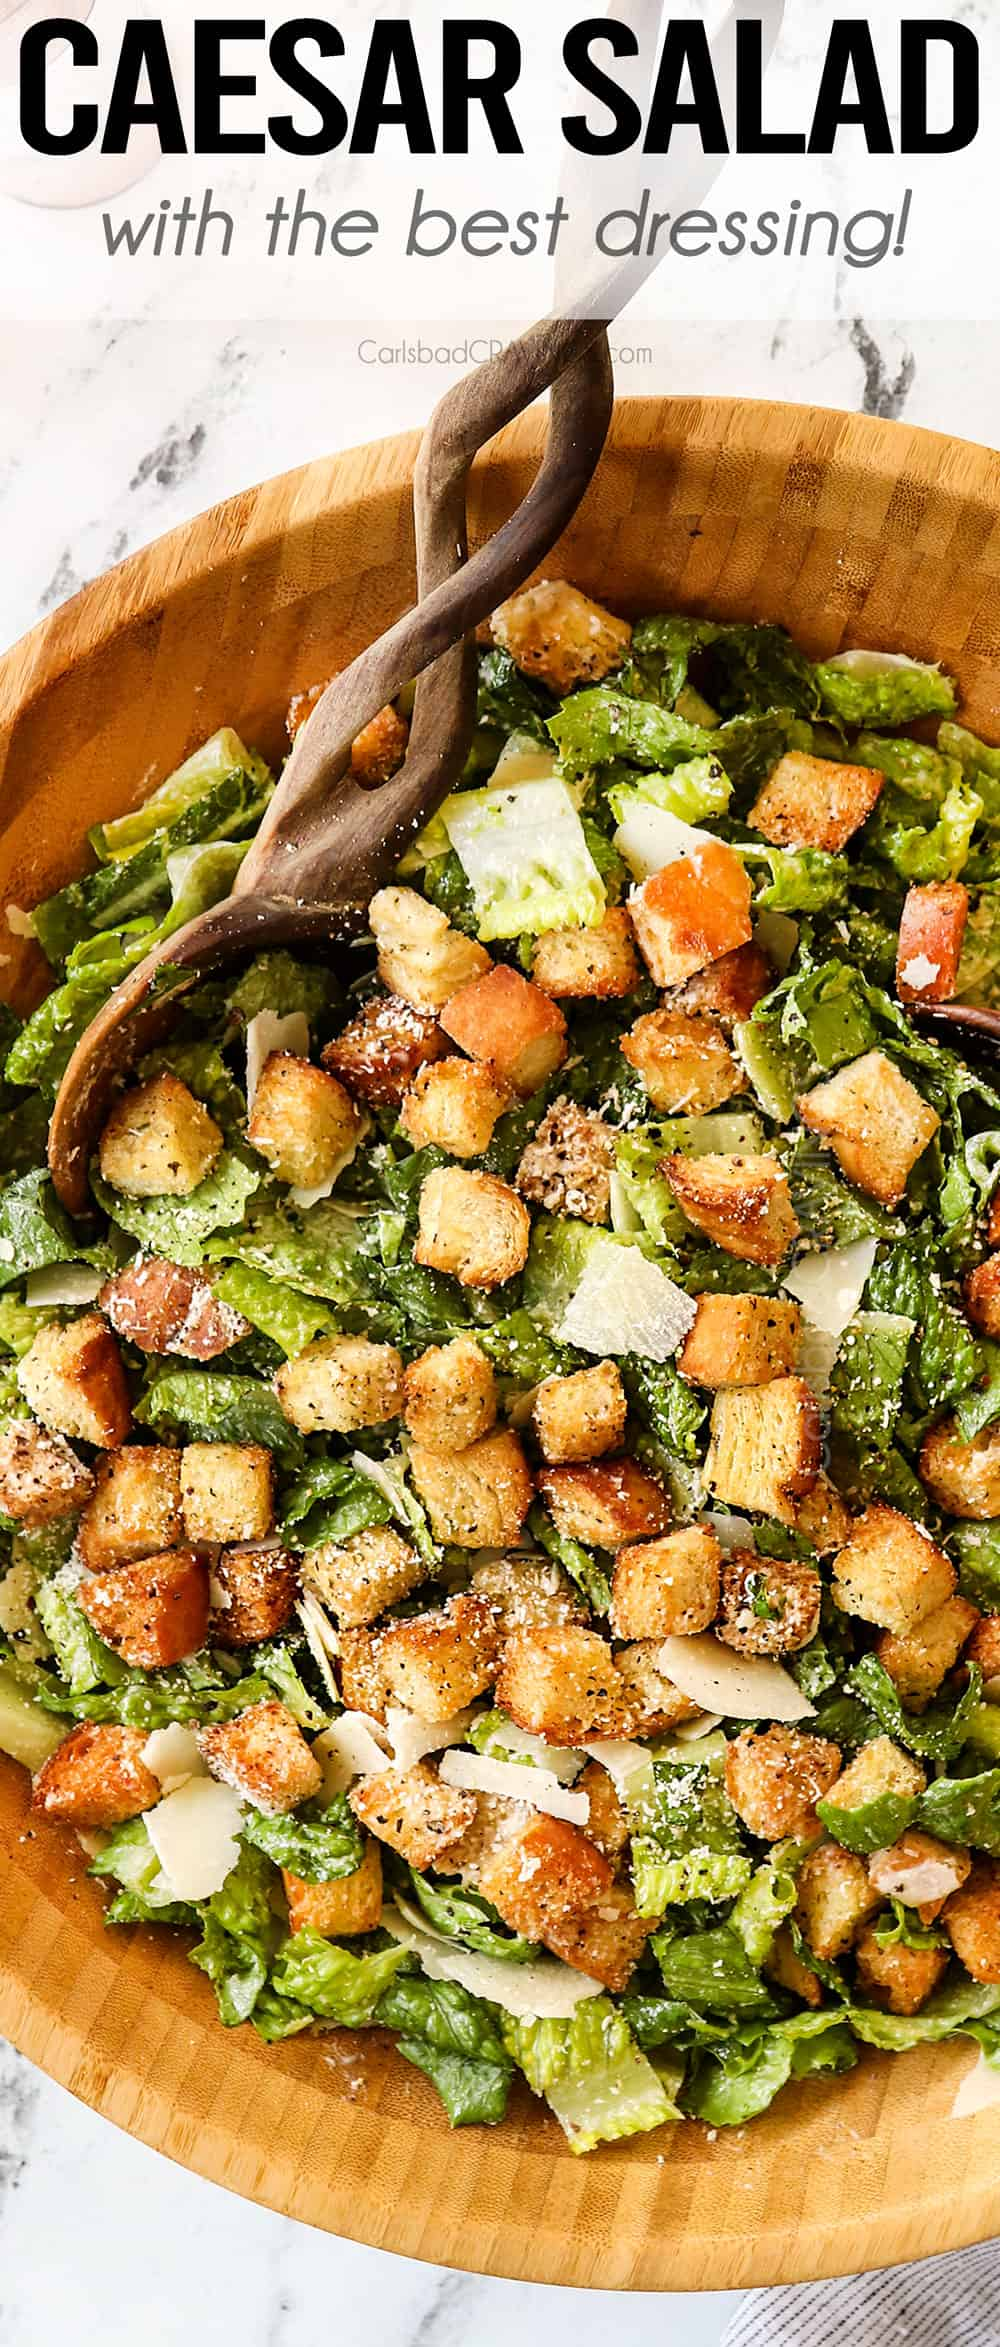 top view of Caesar Salad in a wooden bowl